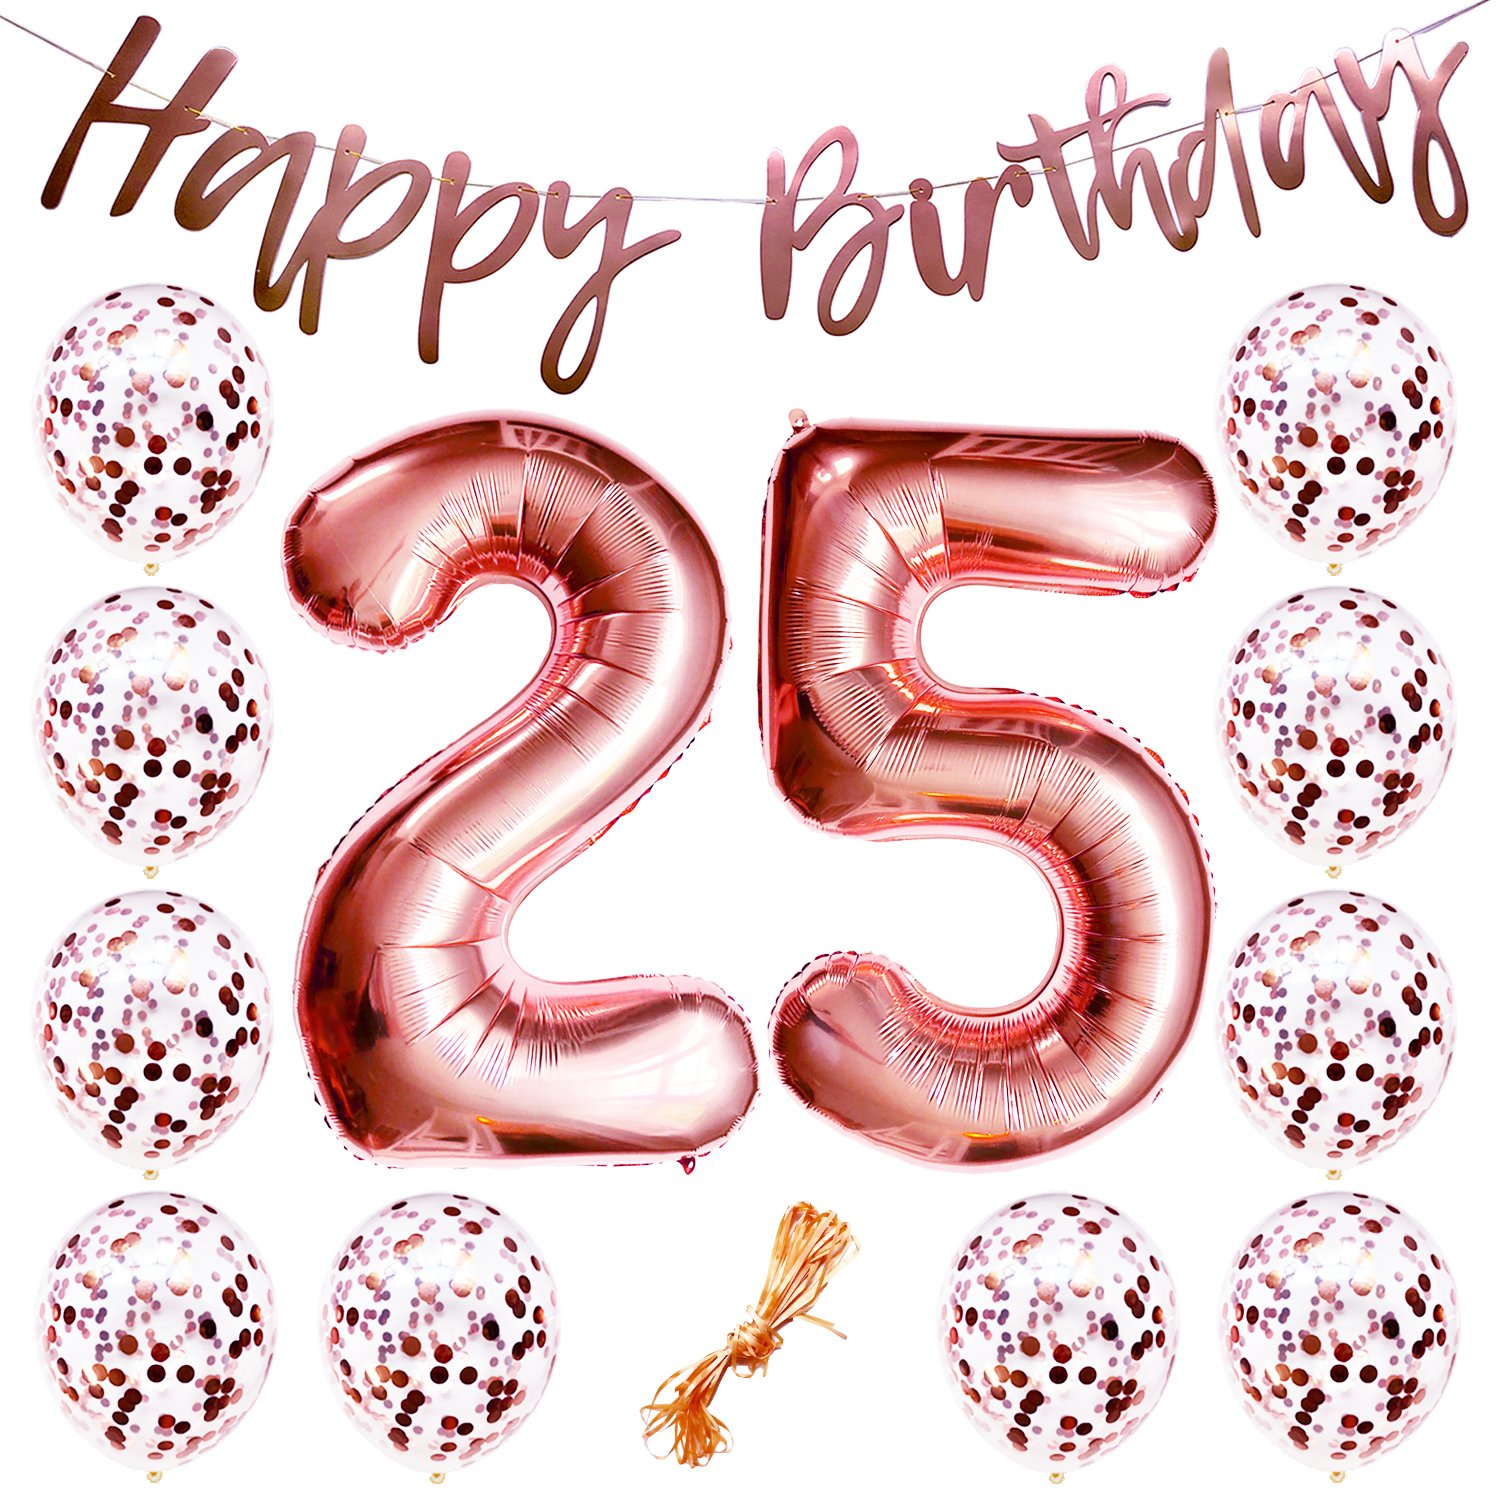 """25th Birthday Party Decorations Rose Gold Decor Strung Banner (HAPPY BIRTHDAY) & 12PC Helium Balloons w/Ribbon [Huge Numbers """"25"""", Confetti] Kit Set Supplies 